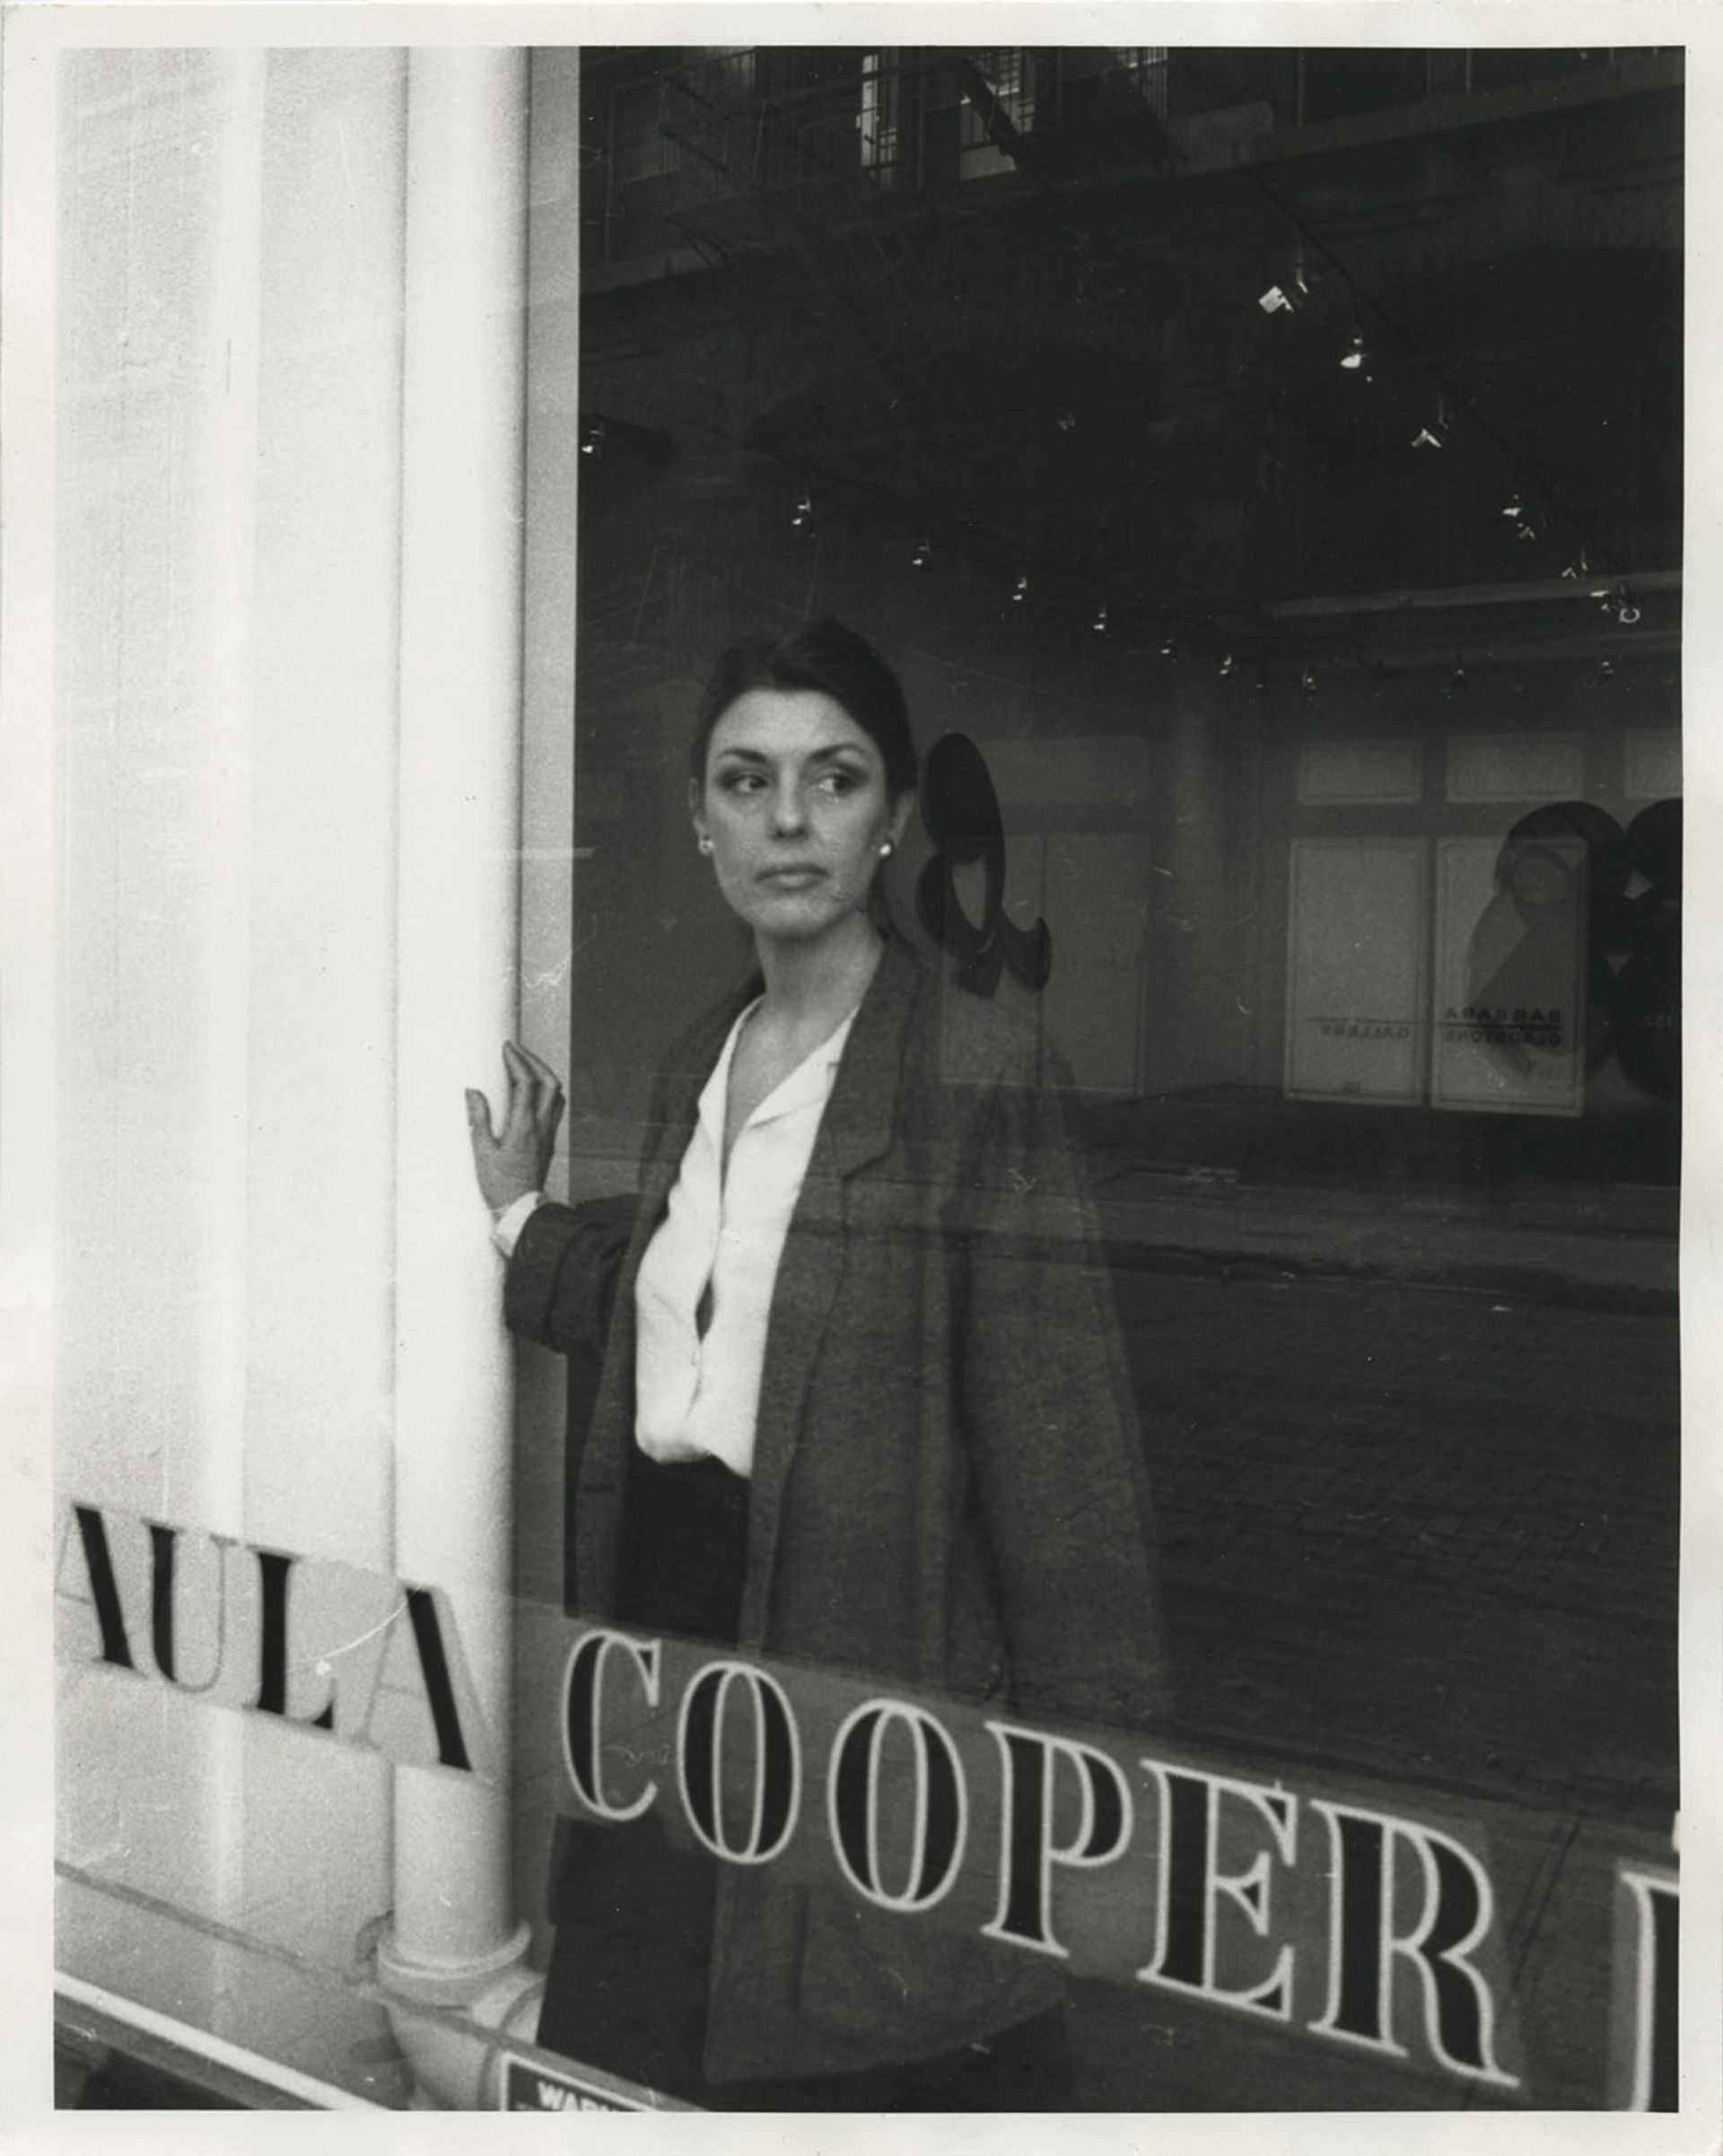 Paula Cooper at her gallery on Wooster Street, New York in 1983 Photo: Richard Leslie Schulman; courtesy of paula cooper gallery